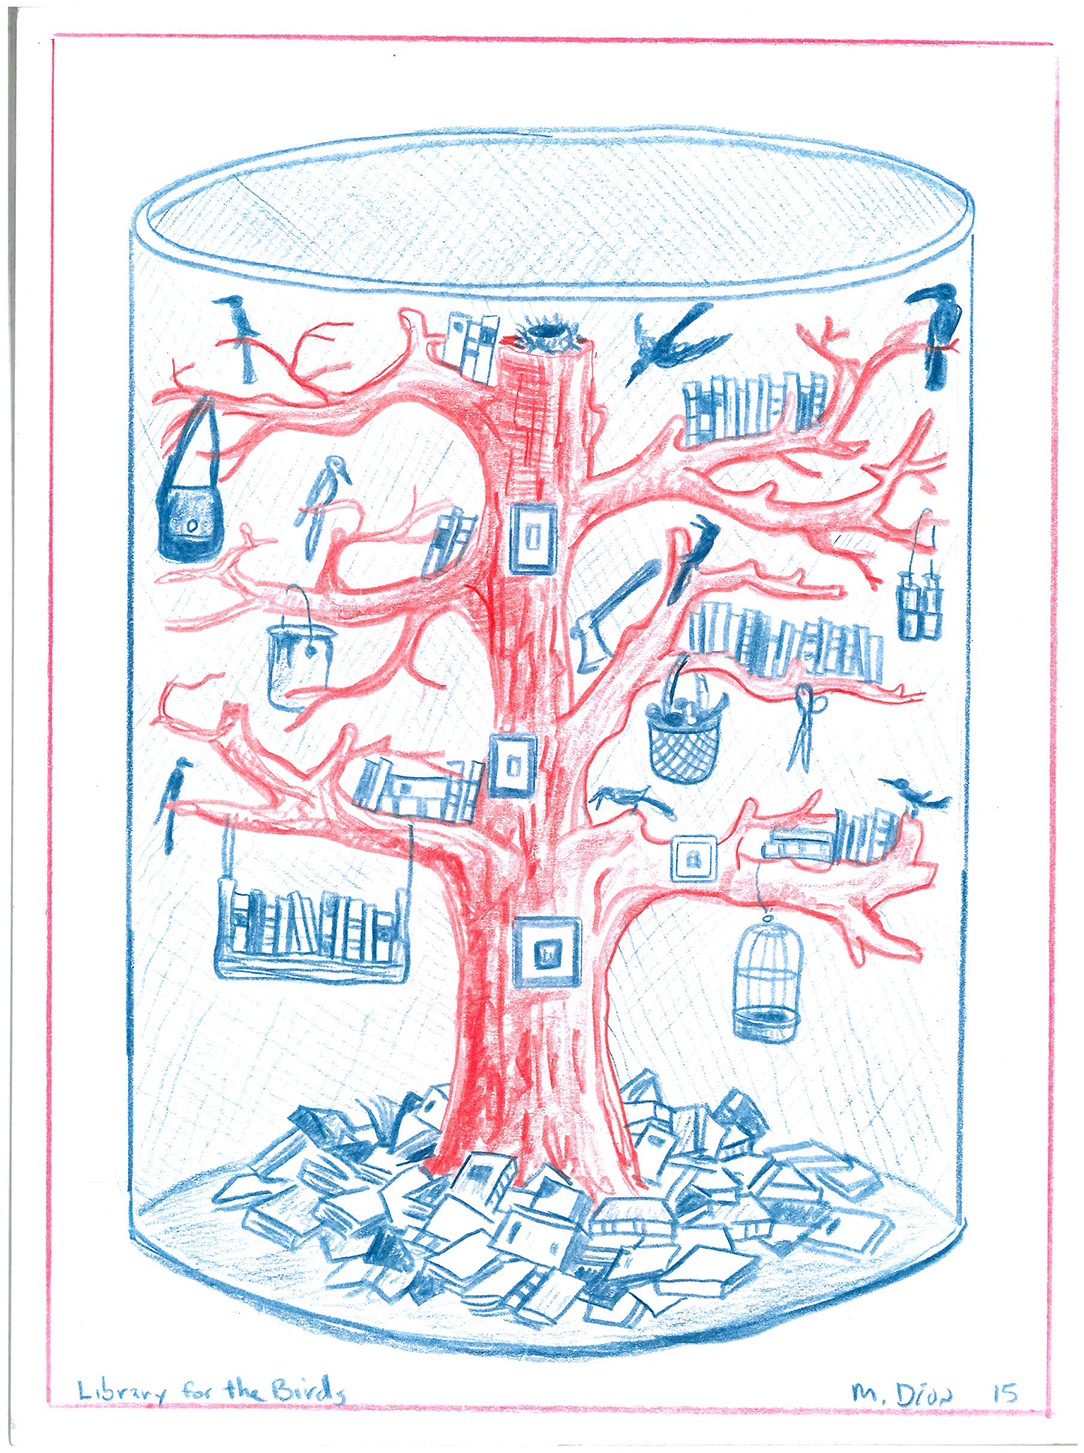 Mark Dion, Library for the Birds, 2015, red and blue pencil on paper, 15.3x20.4cm